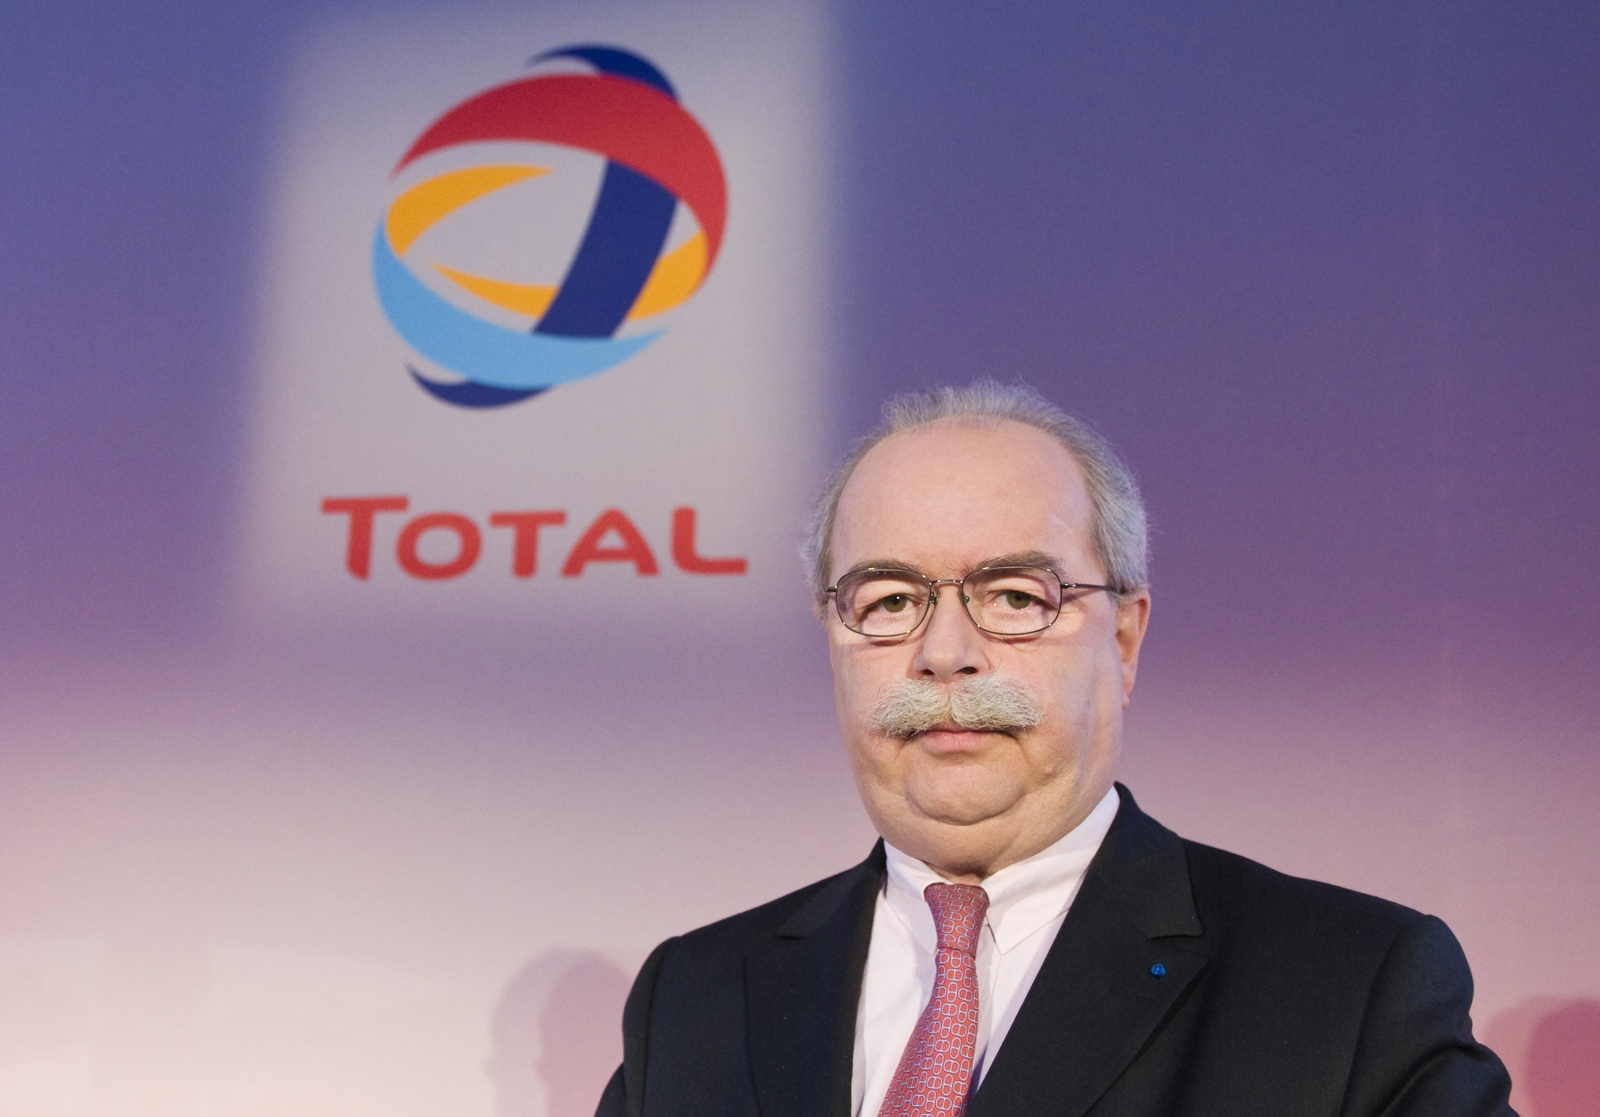 Total CEO Christophe de Margerie: Tributes Flood In After Being Killed in Plane Collision